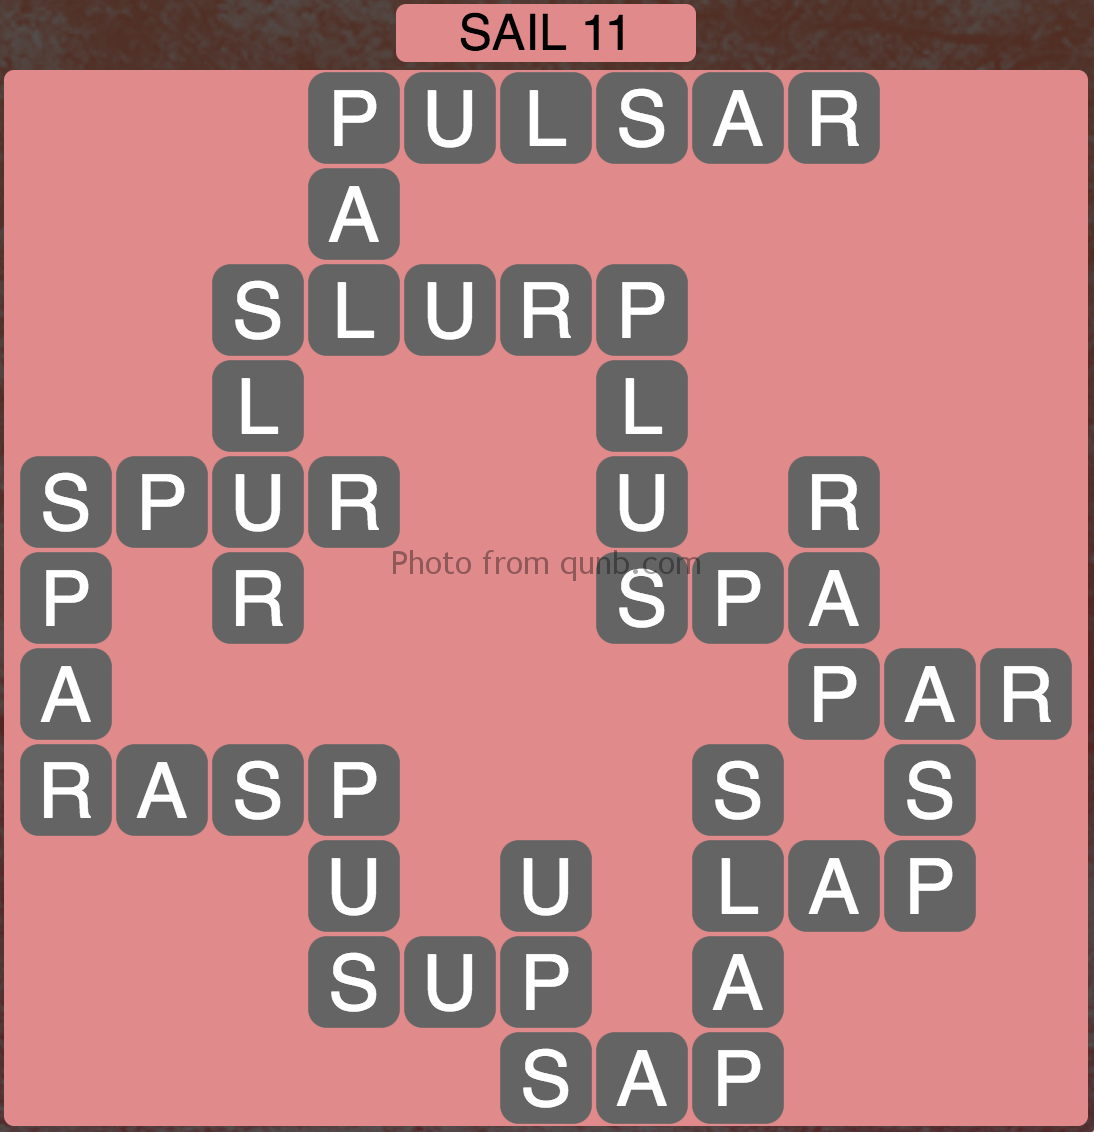 Wordscapes Sail 11 (Level 891) Answers